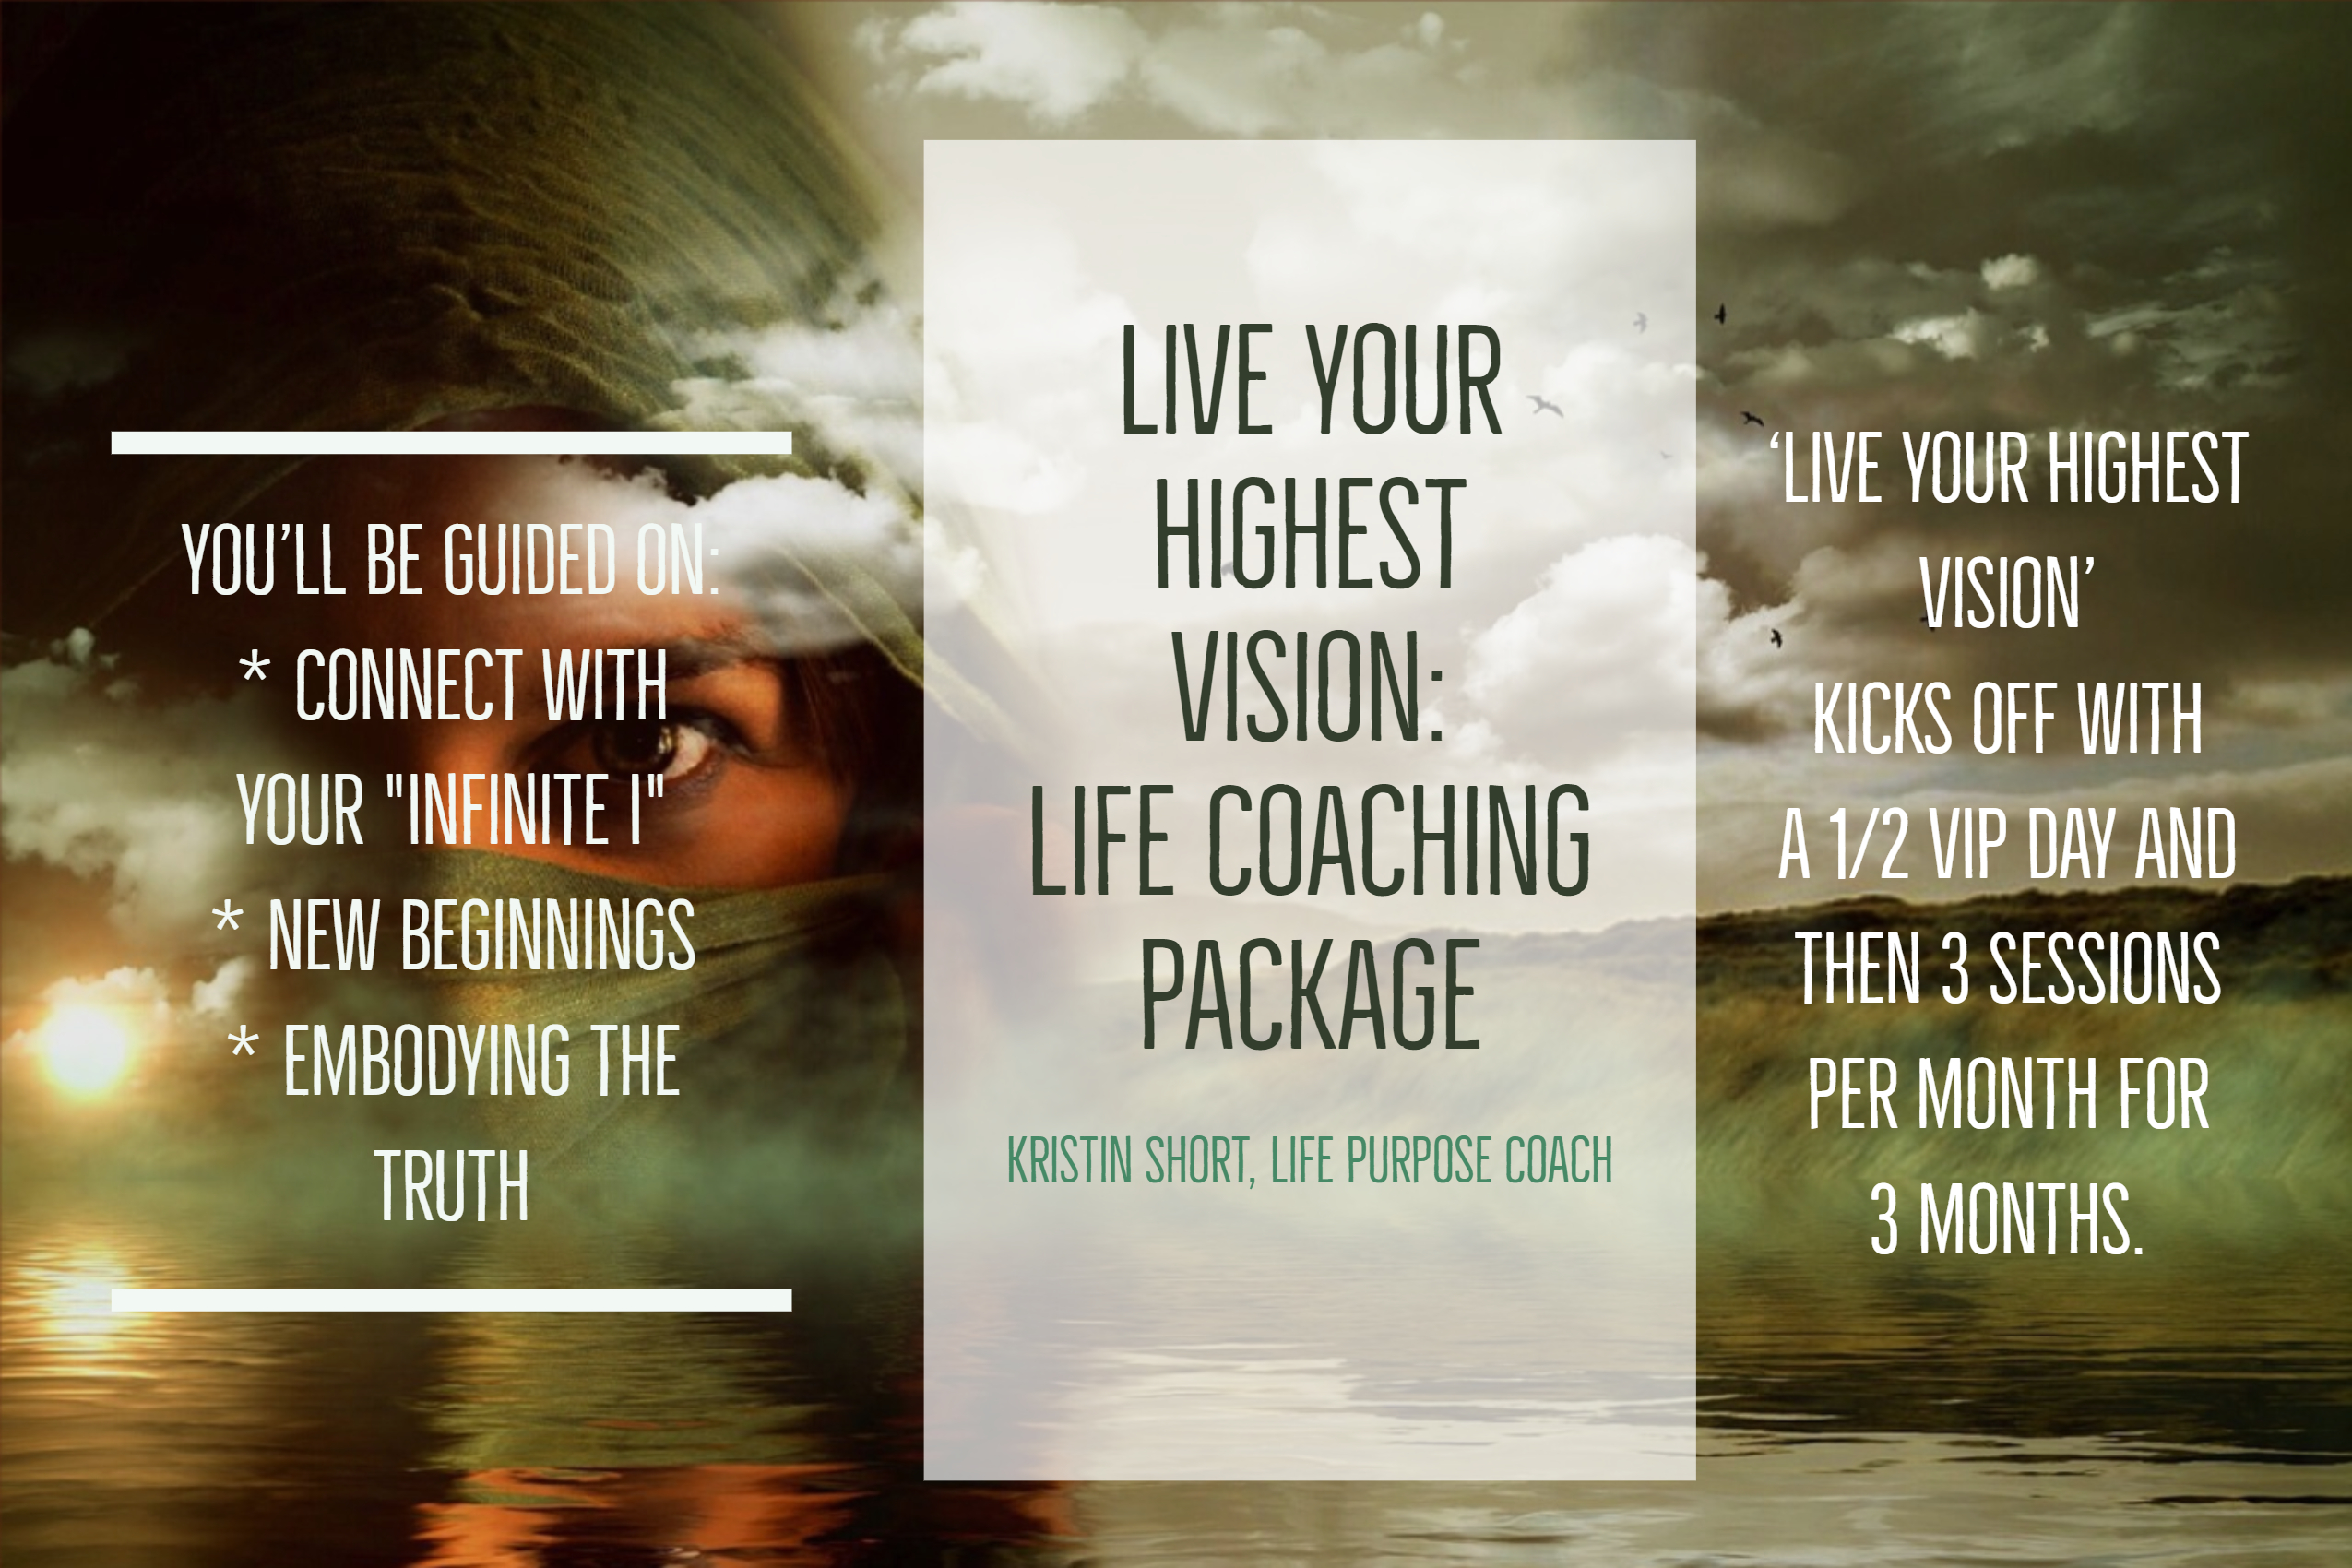 Live Your Highest Vision Coaching Package Kristin Short